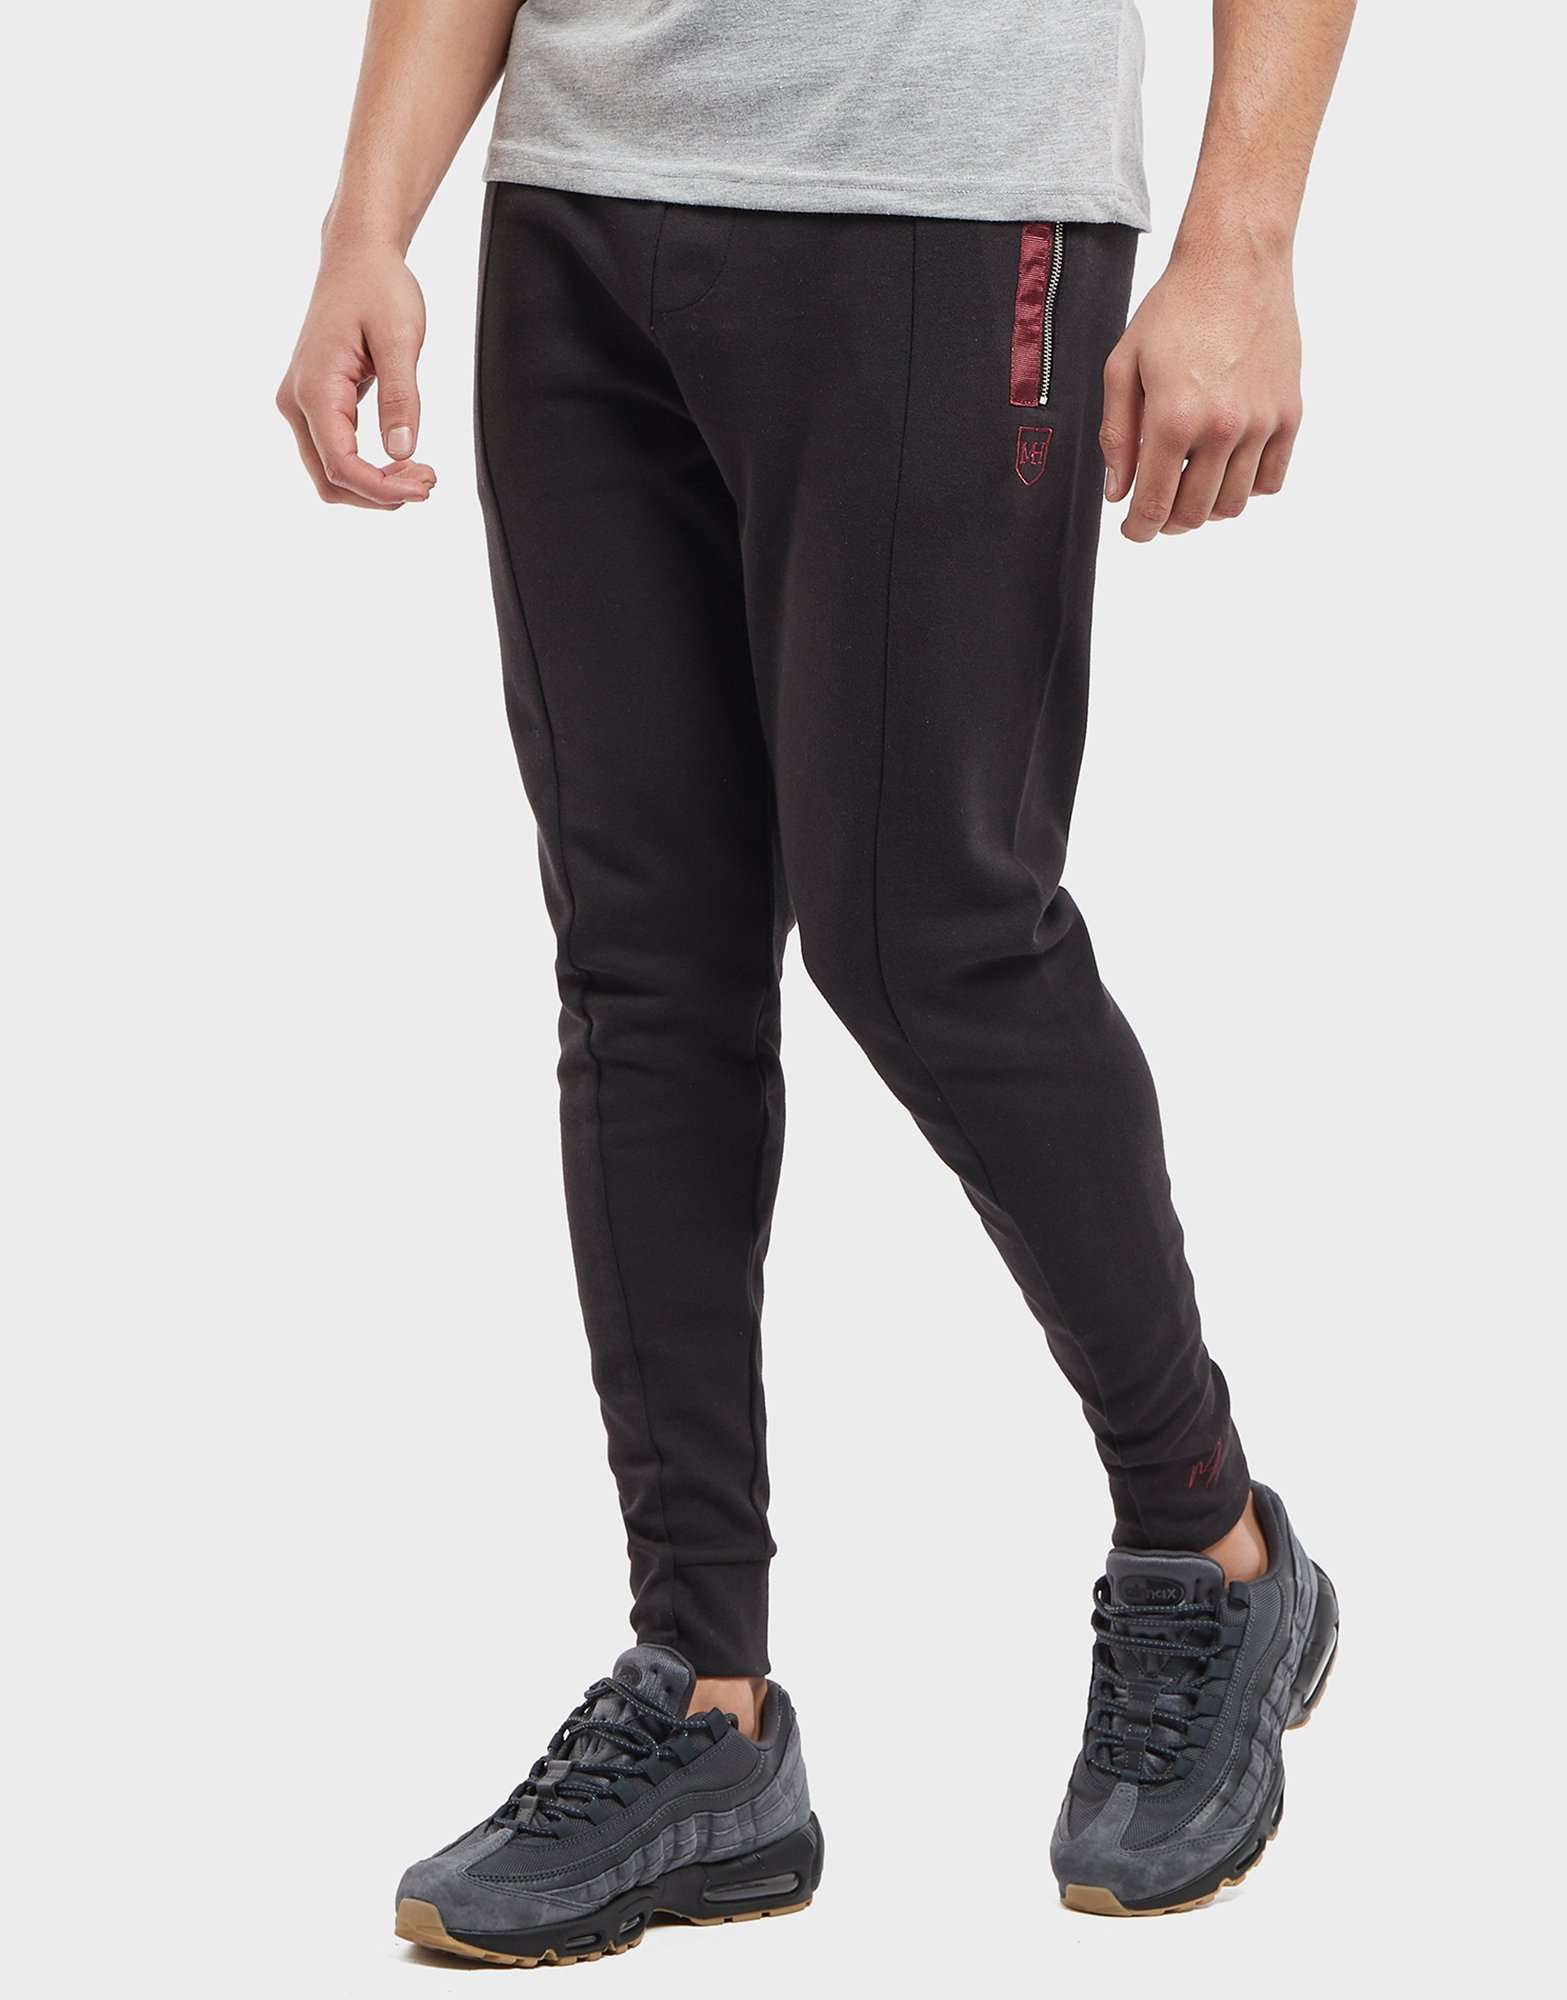 Millionaire Homme Jacquard Cuffed Fleece Pants - Online Exclusive